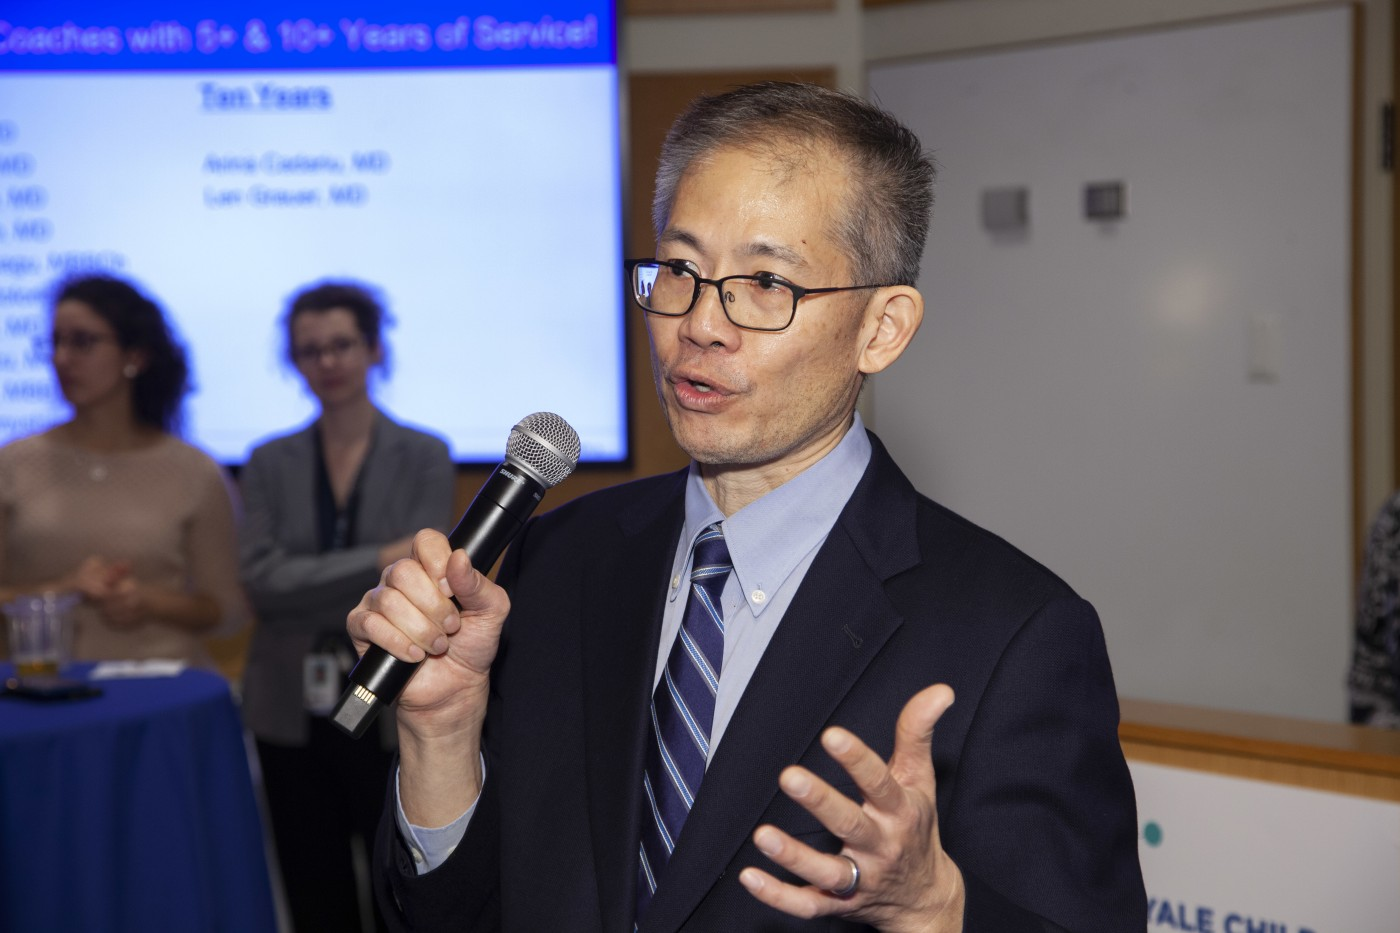 MCE Director Barry Wu, MD, FACP